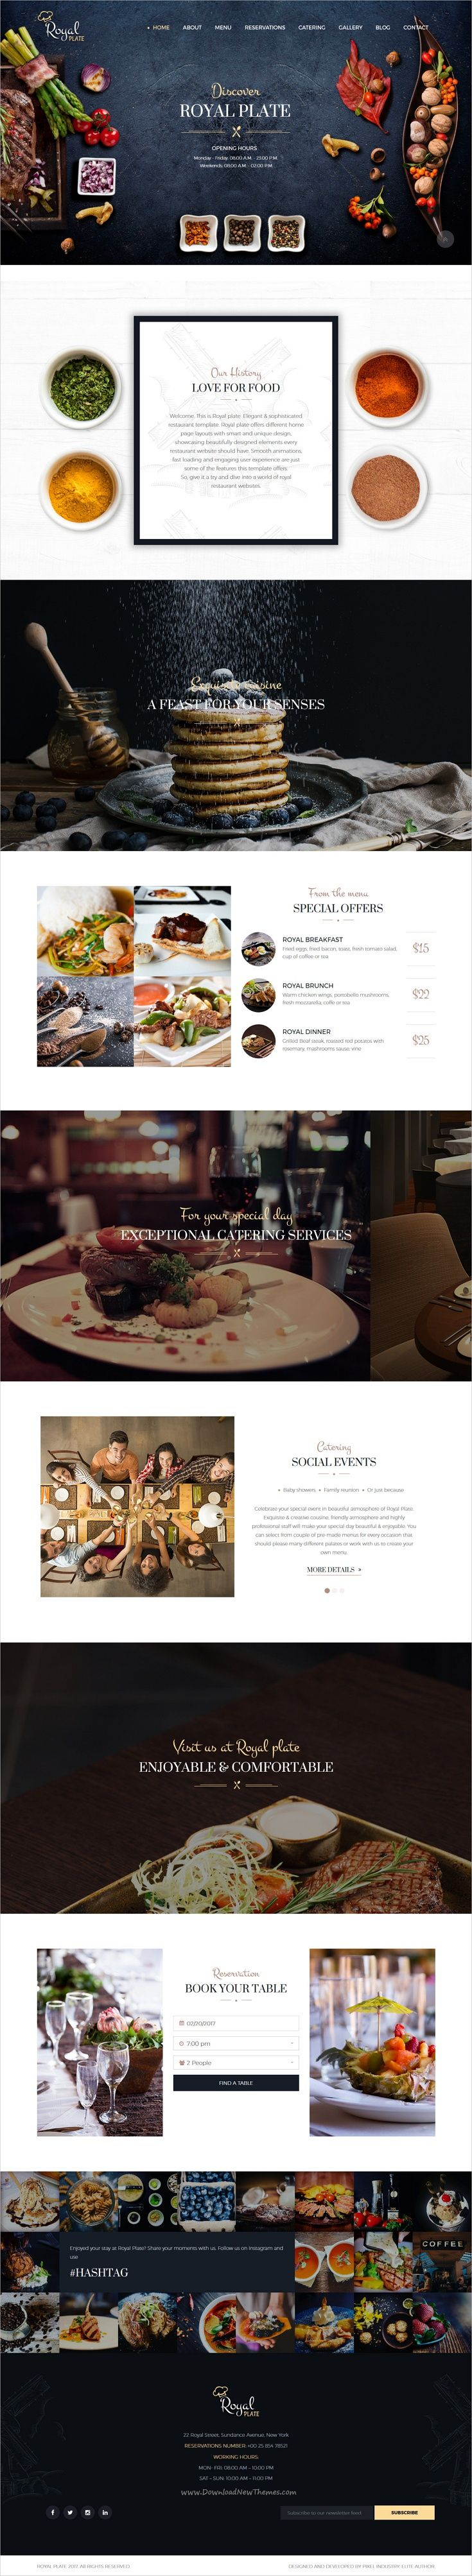 Royal Plate is a responsive #WordPress theme created for #restaurants and #catering companies websites download now➩ https://themeforest.net/item/royal-plate-restaurant-and-catering-wordpress-theme/17302632?ref=Datasata